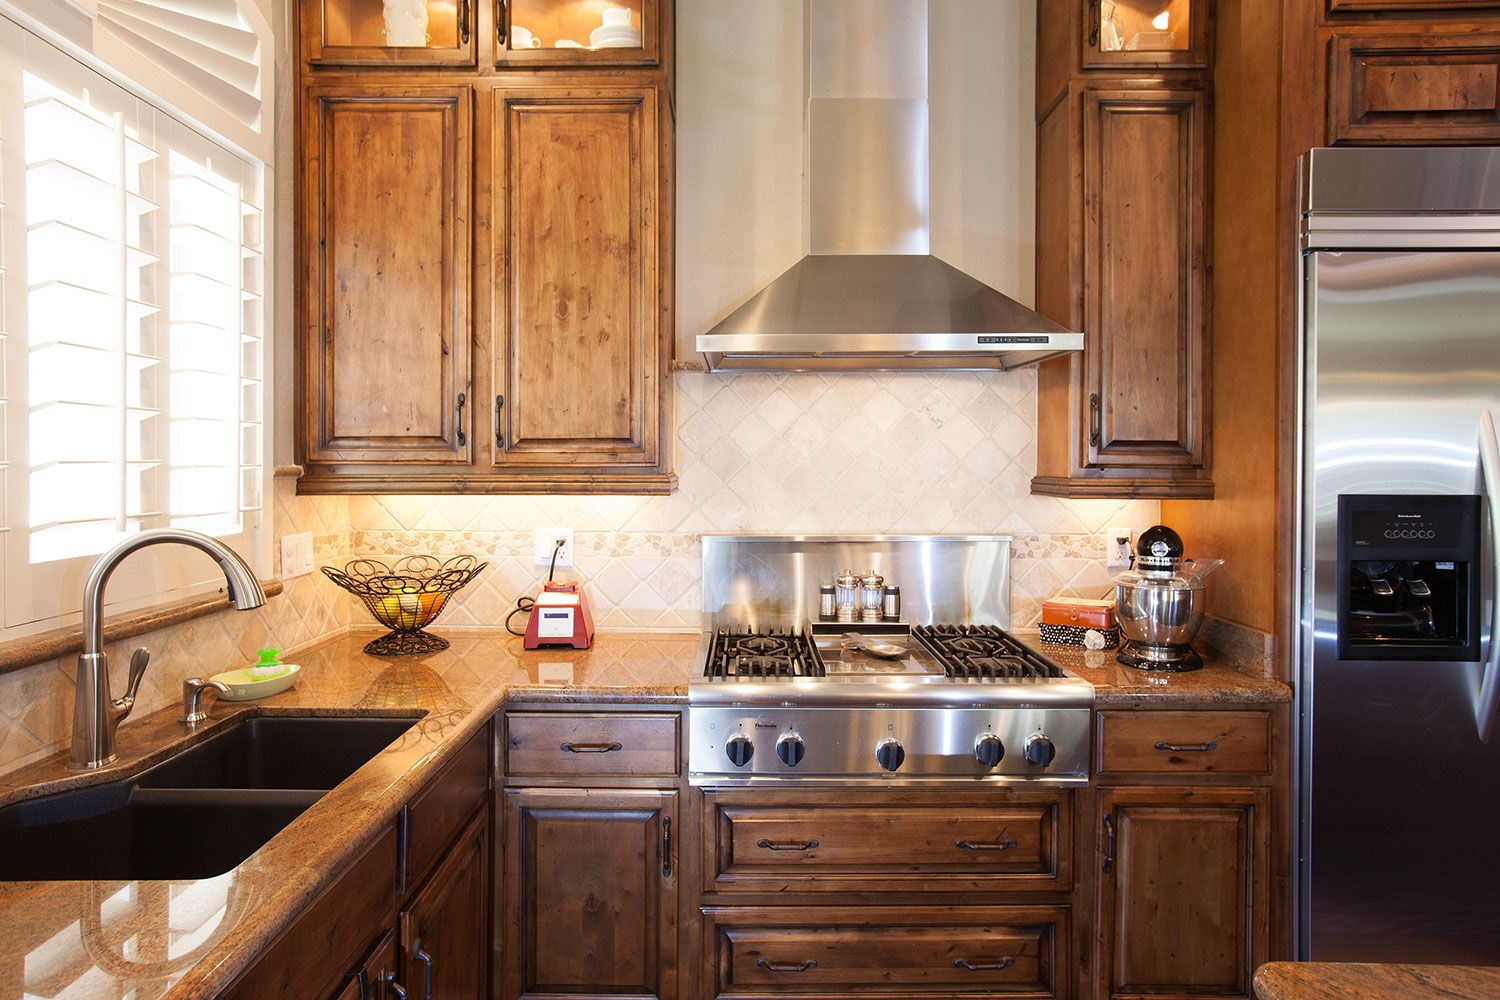 Westwood Rustic Tuscany Kitchen Cabinets From Value Series Custom Bathroom Vanity Tuscany Kitchen Kitchen Cabinets